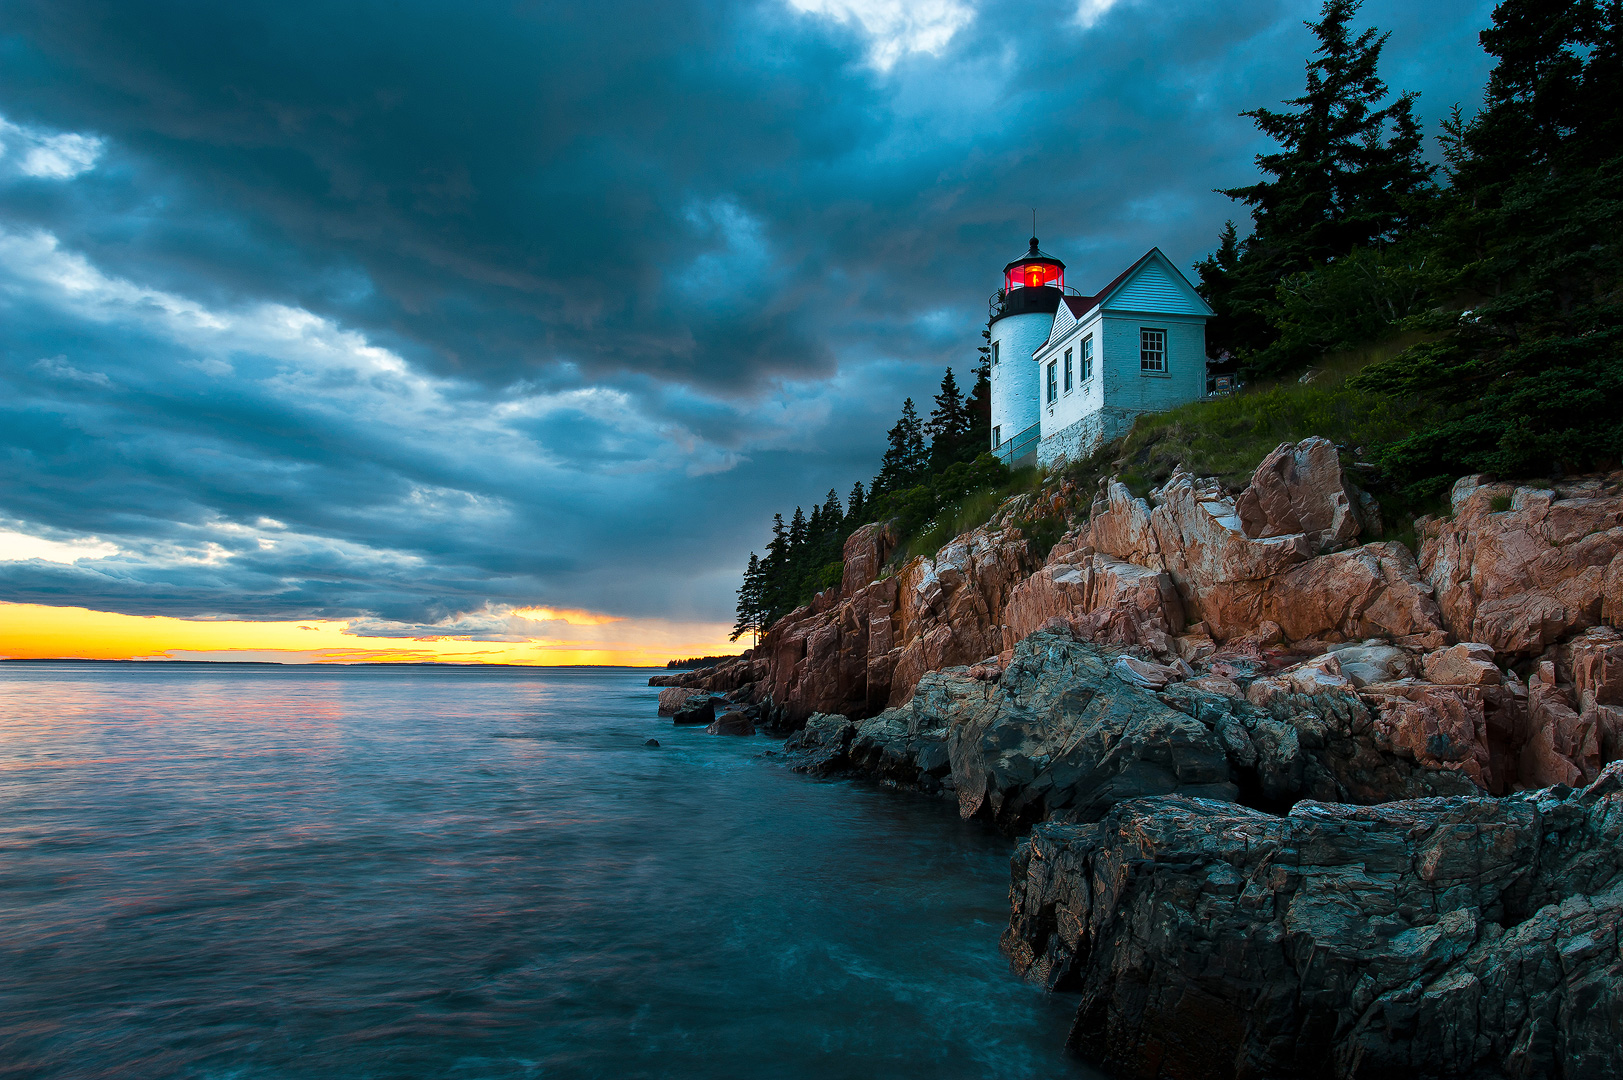 Atlantic, ocean, acadia, national, park, beach, island, bernard chen, timescapes, bass harbor, lighthouse, Mount Desert Island, sunset, dramatic skies, photo